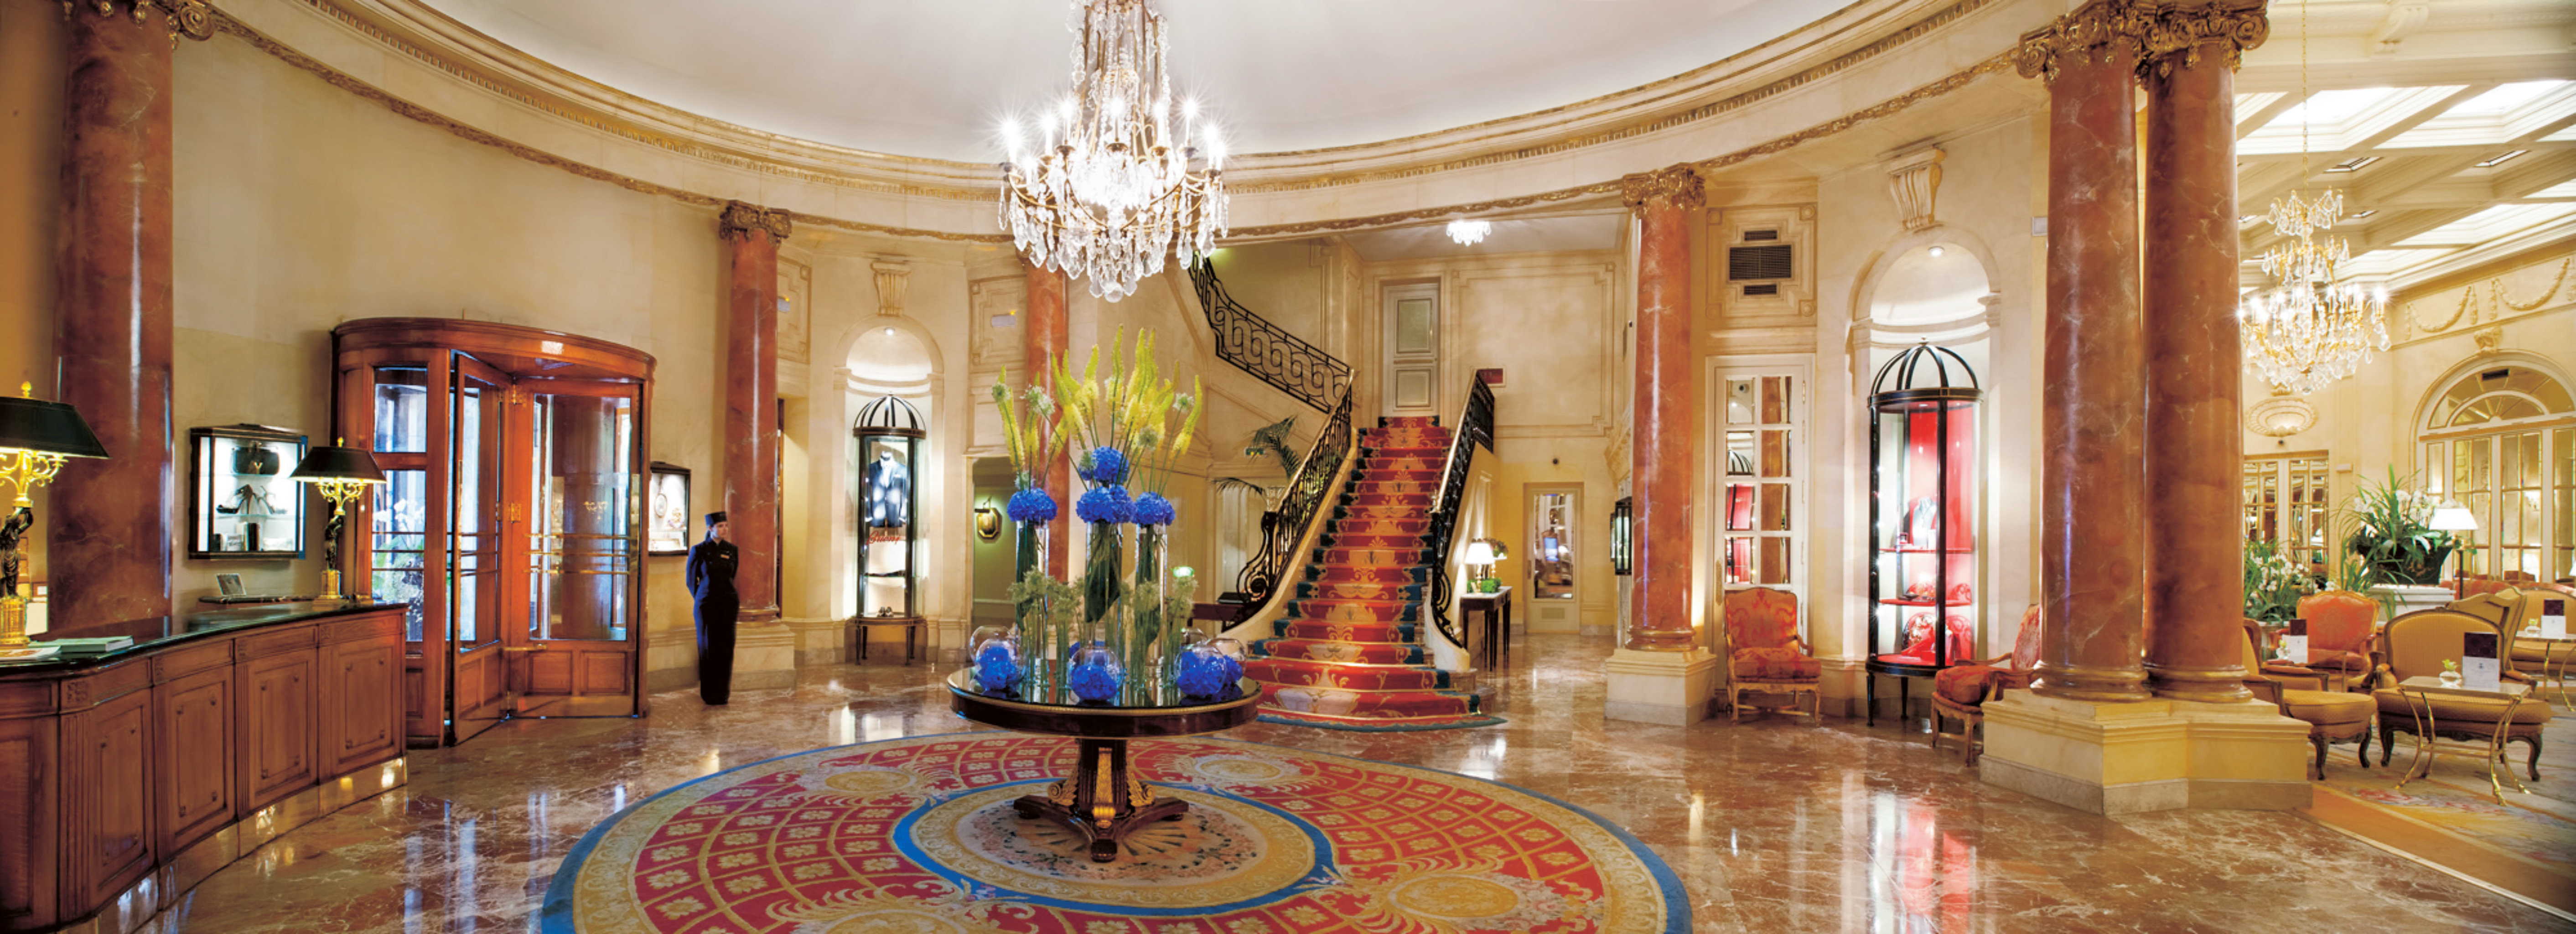 Elegant Historic Lounge Luxury Rustic Lobby building palace altar chapel tourist attraction ballroom place of worship synagogue